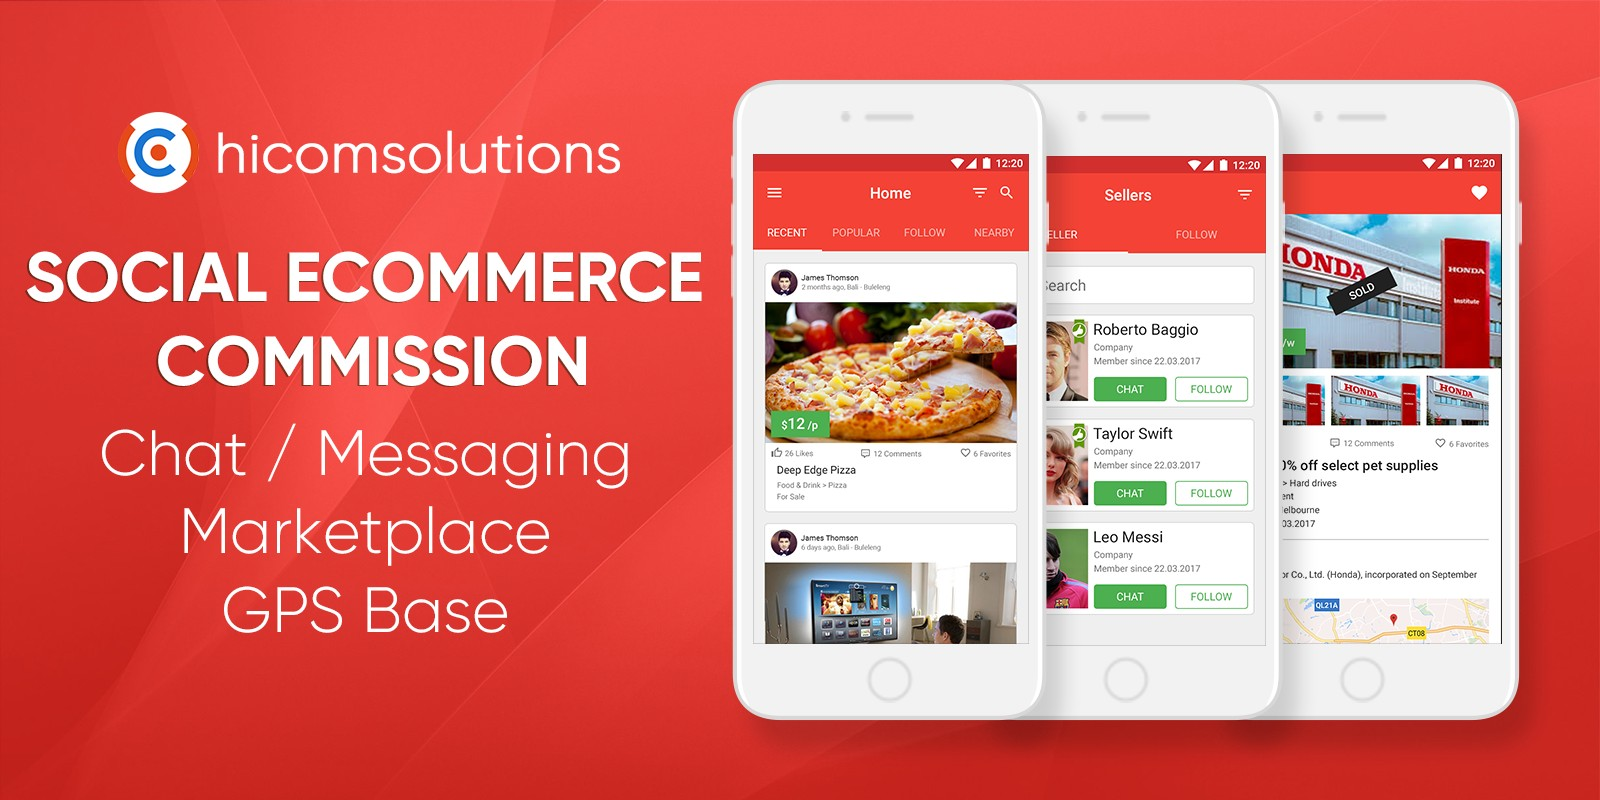 Social eCommerce Marketplace Commission - iOS